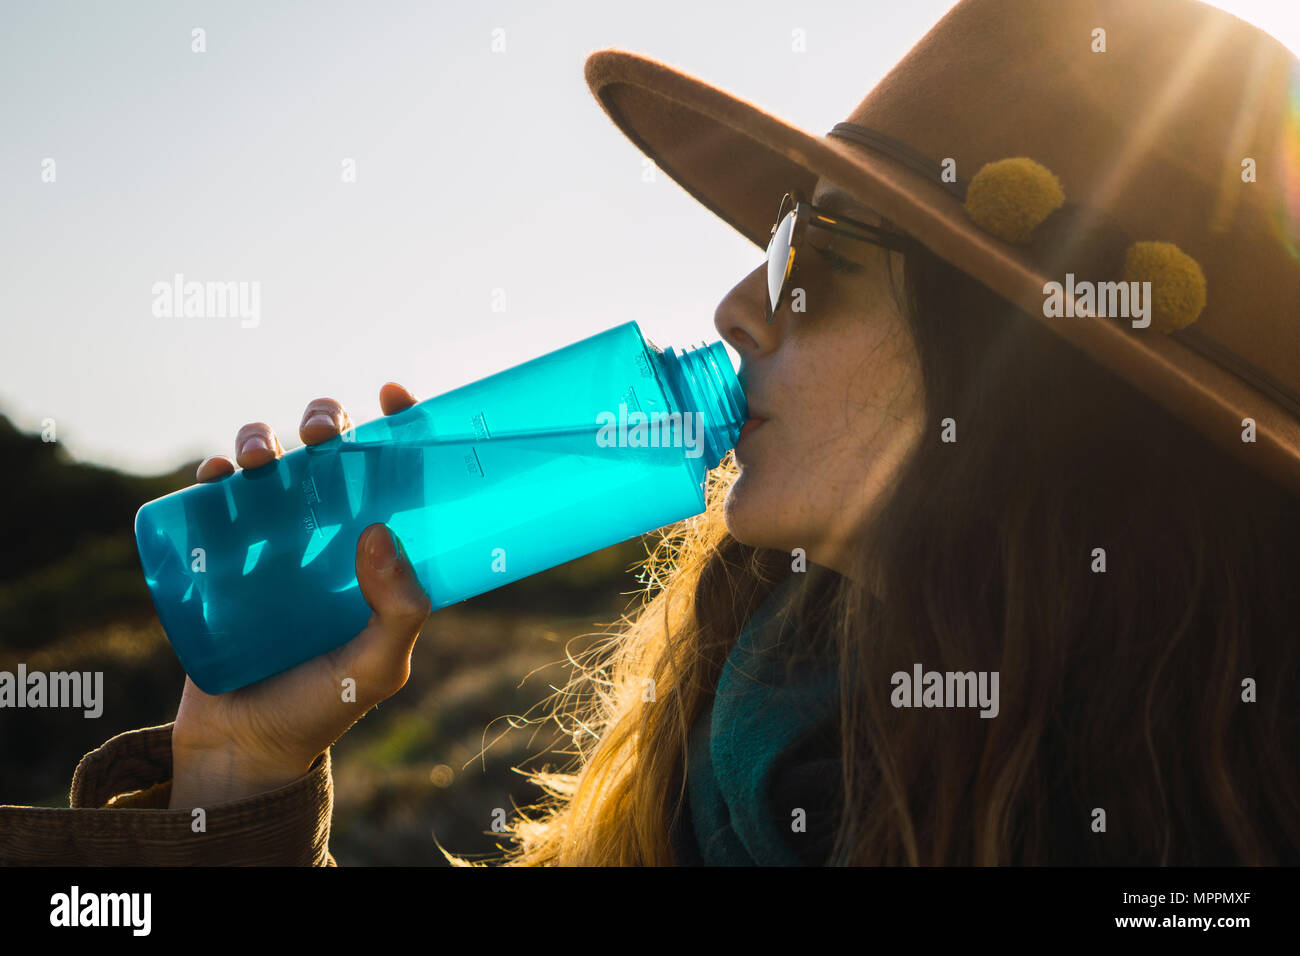 Woman on a hiking trip drinking from water bottle - Stock Image